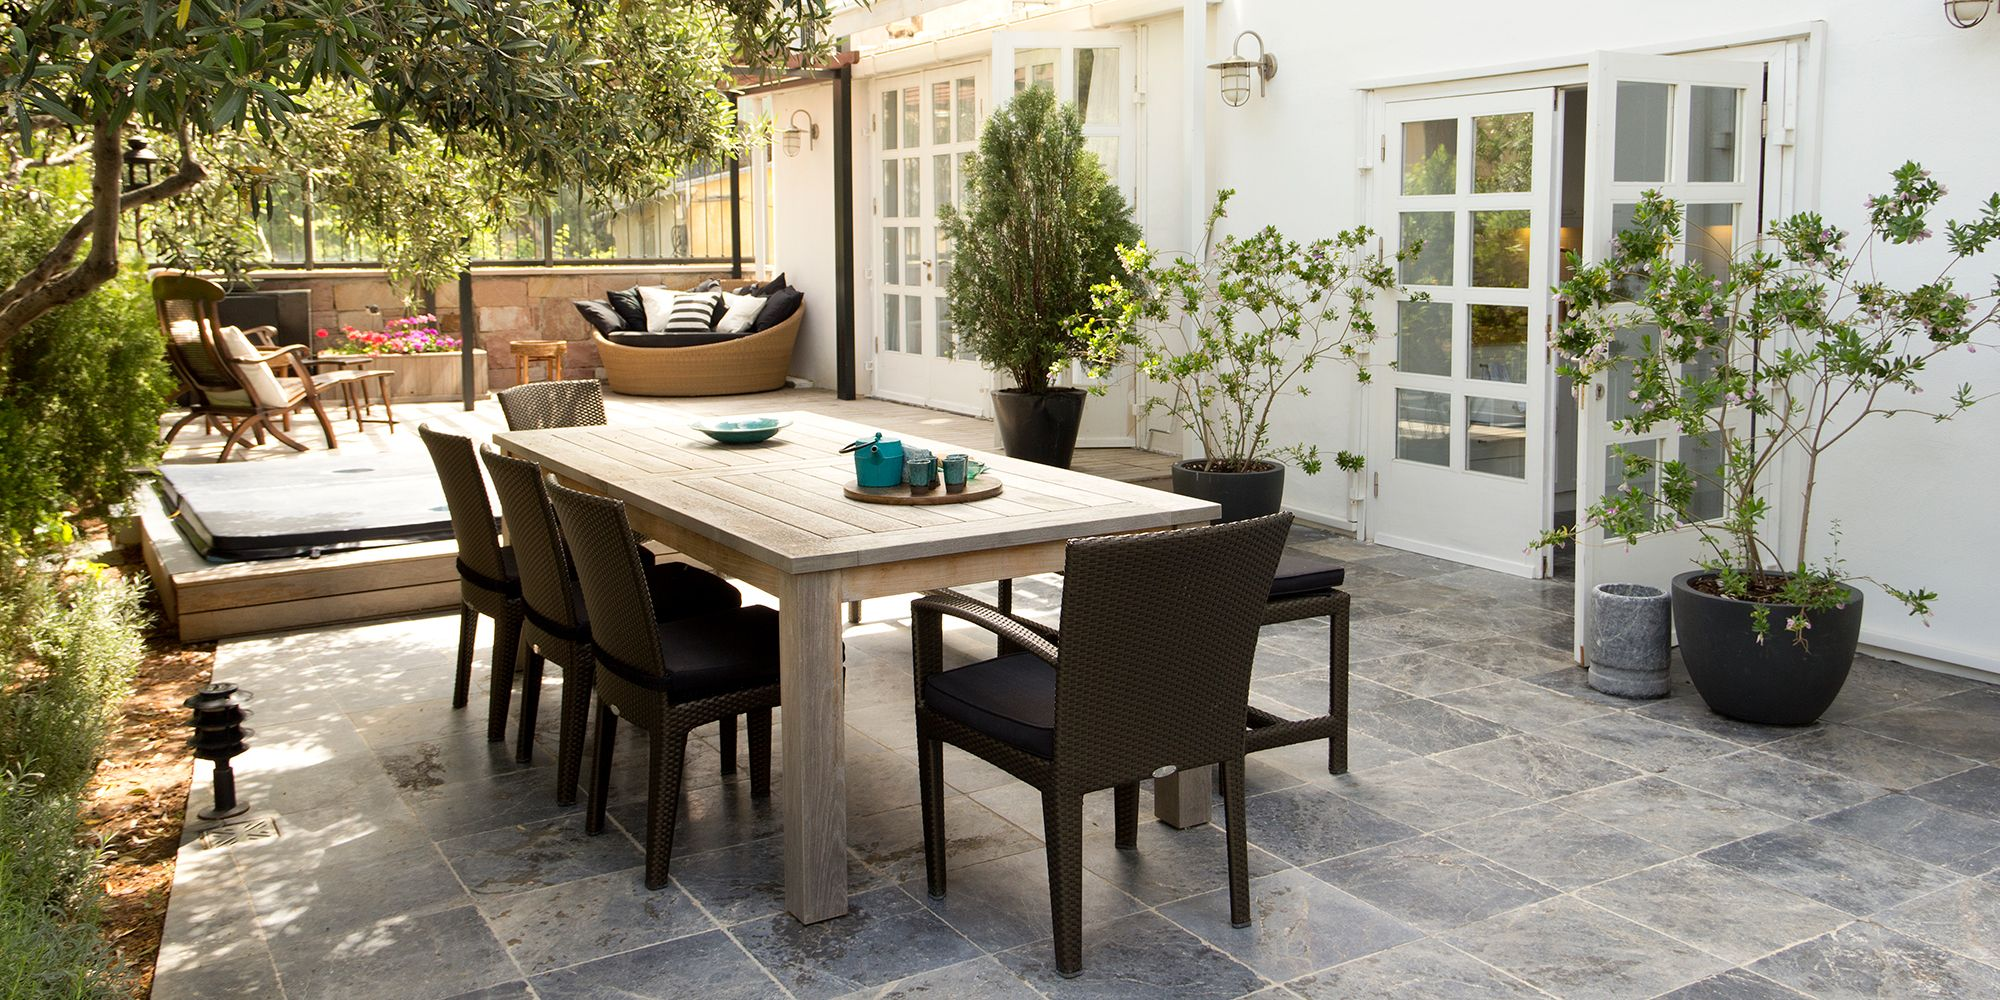 Incredible 9 Best Patio Dining Sets You Can Buy On Amazon In 2019 Home Interior And Landscaping Ologienasavecom